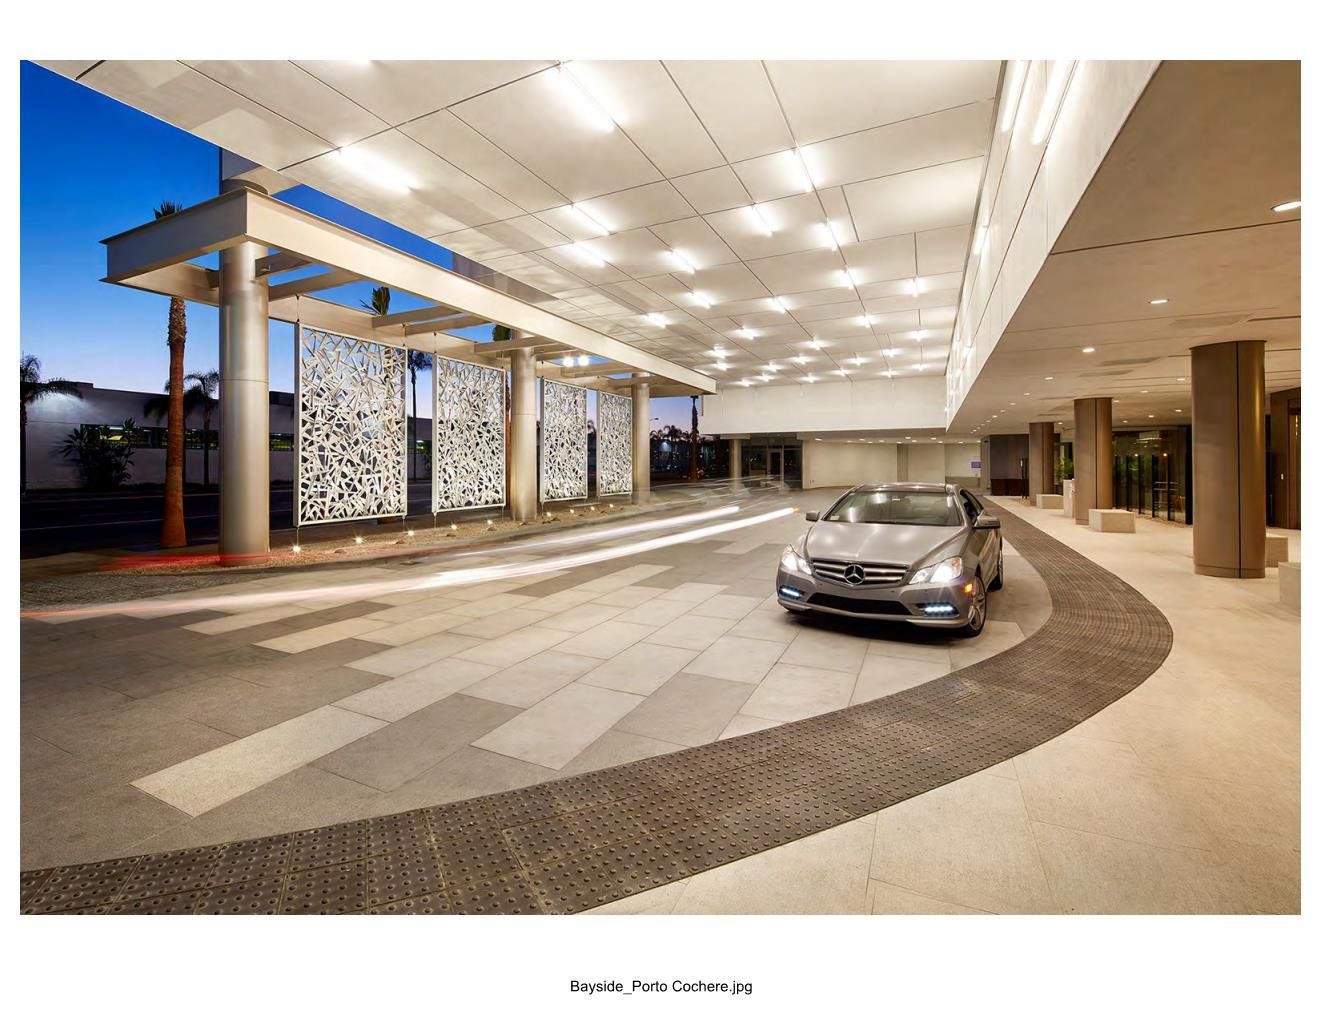 Pin By Monarch Stone International On Granite Paving Stone Hotel Entrance Entrance Design House In The Woods